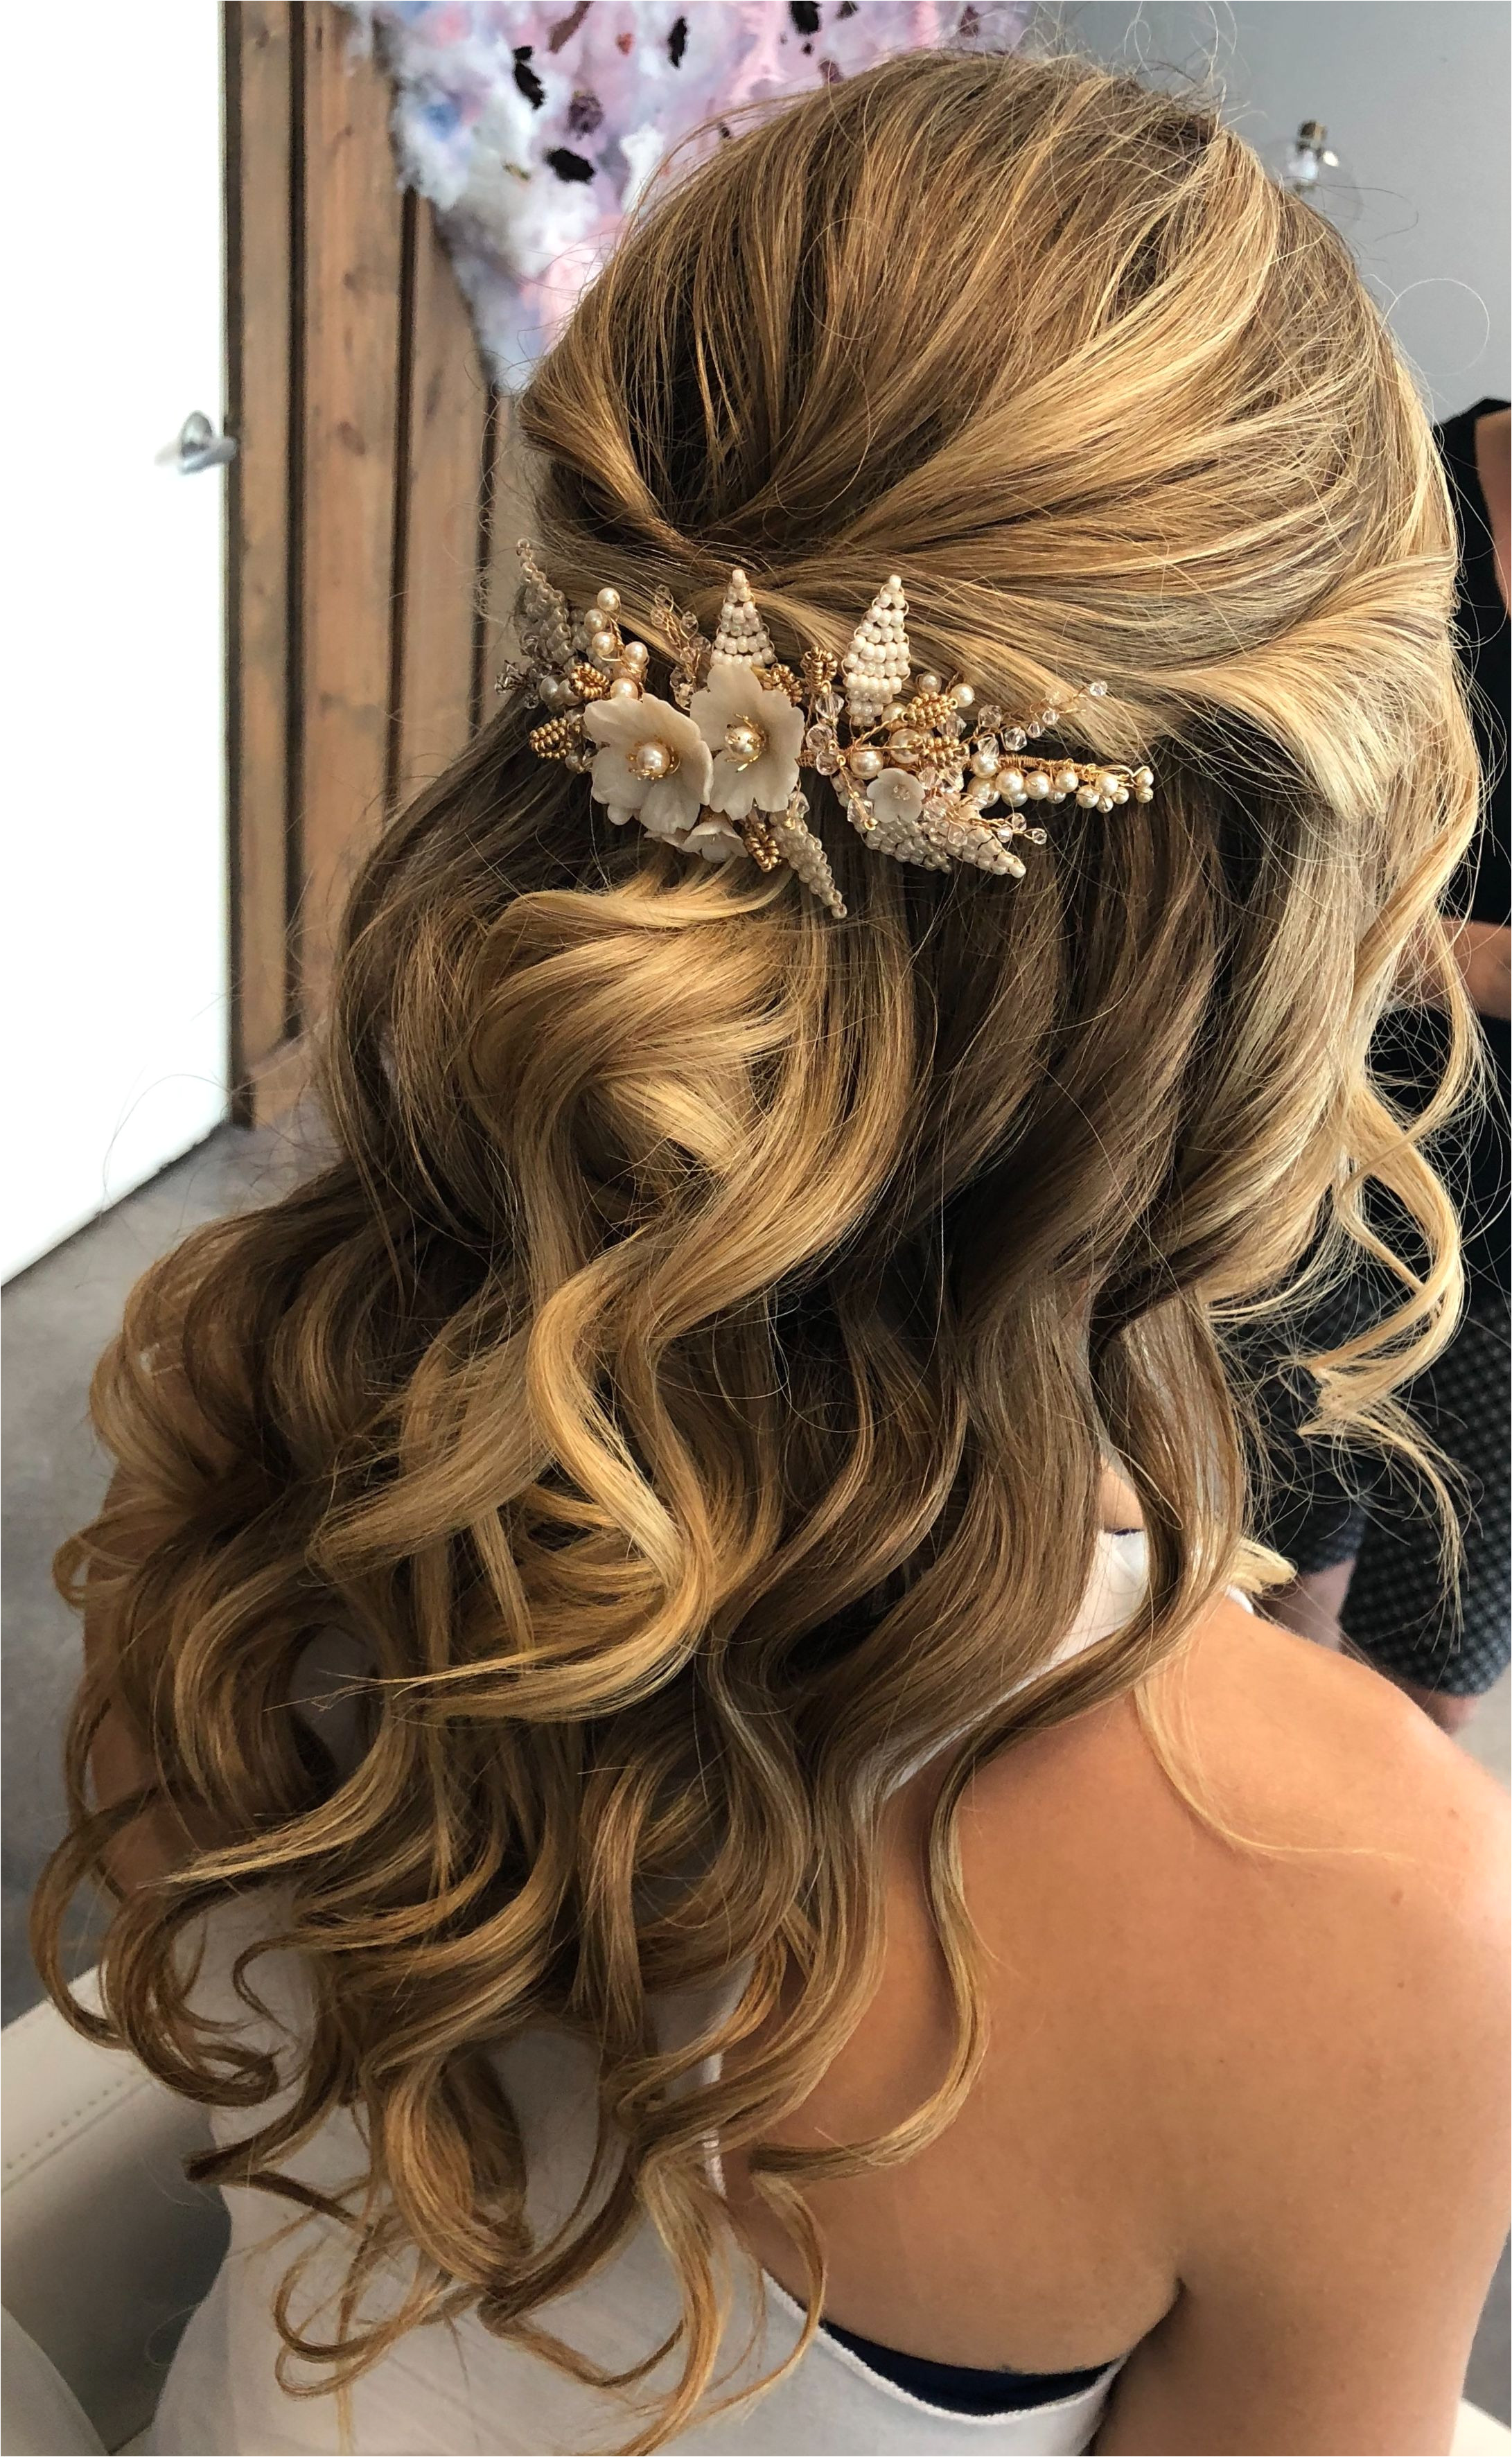 Half up half down bridal hair style with hair accessory from allaboutromance Etsy shop